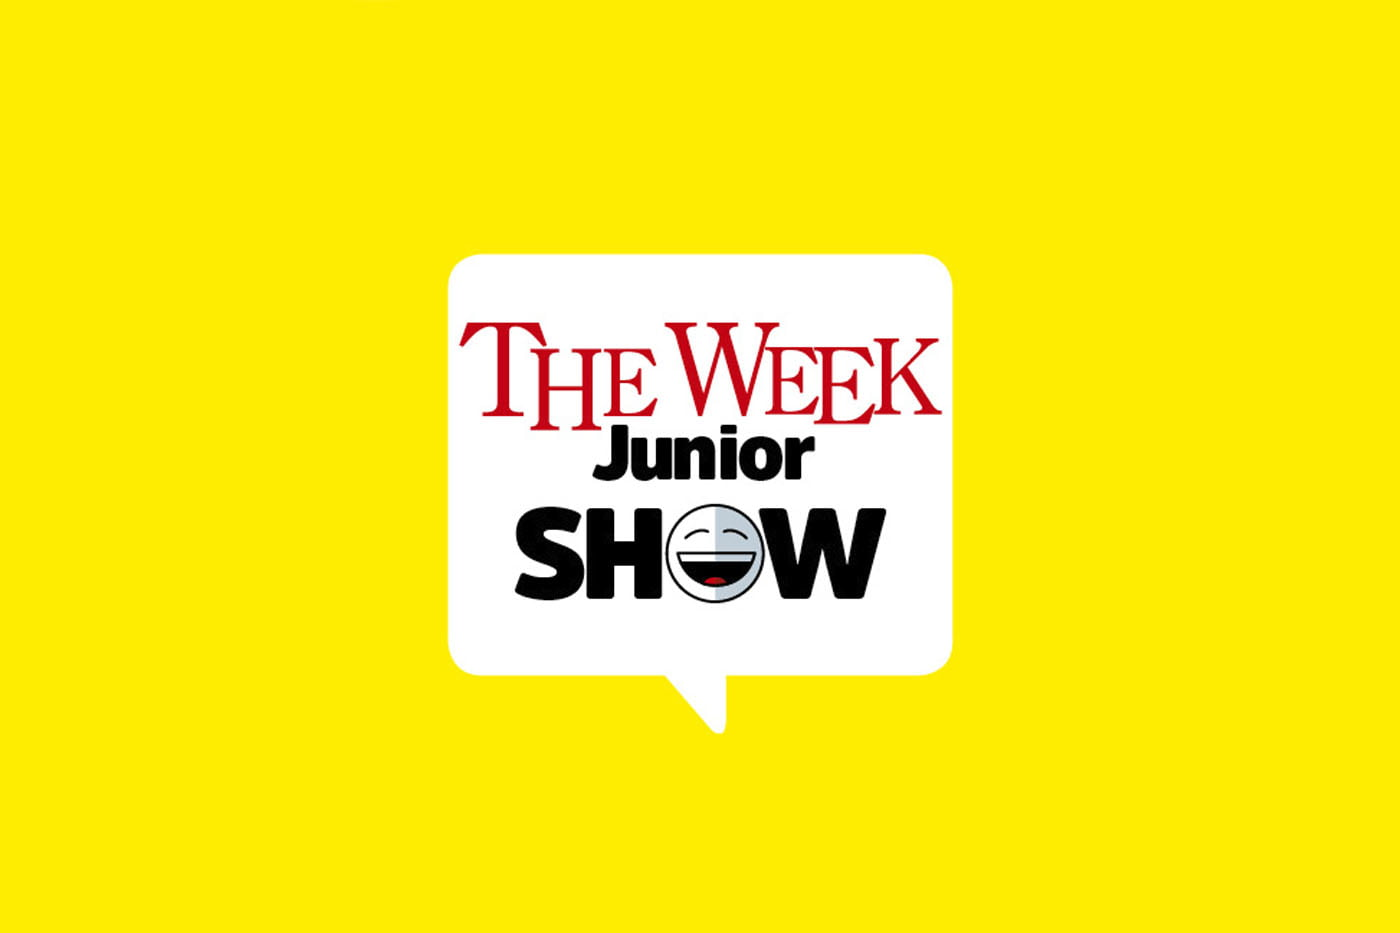 The Week Junior Magazine Launches Weekly Podcast For Families